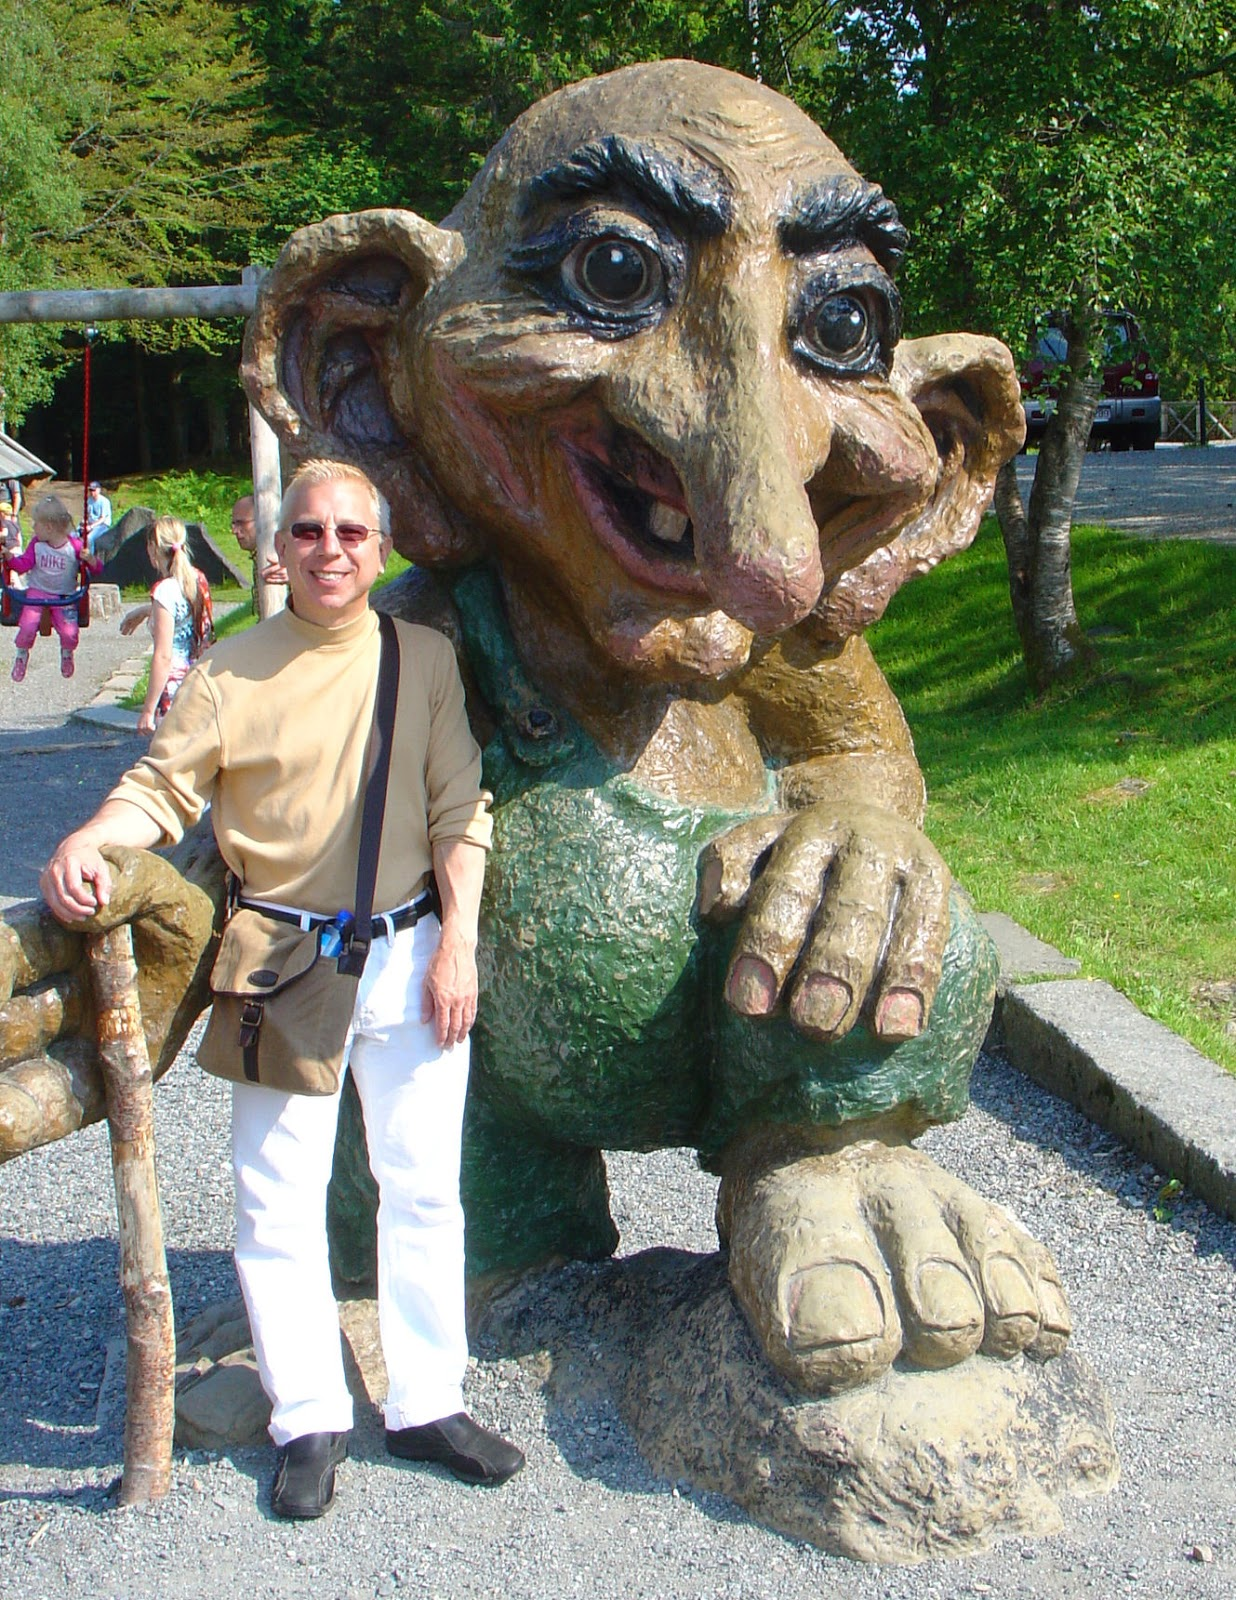 Steadfast in his trek to seek out and find the mysterious and elusive trolls of Norway, we find the Trollhunter once again posing with another new friend at the top of Mount Fløyen in Bergen.